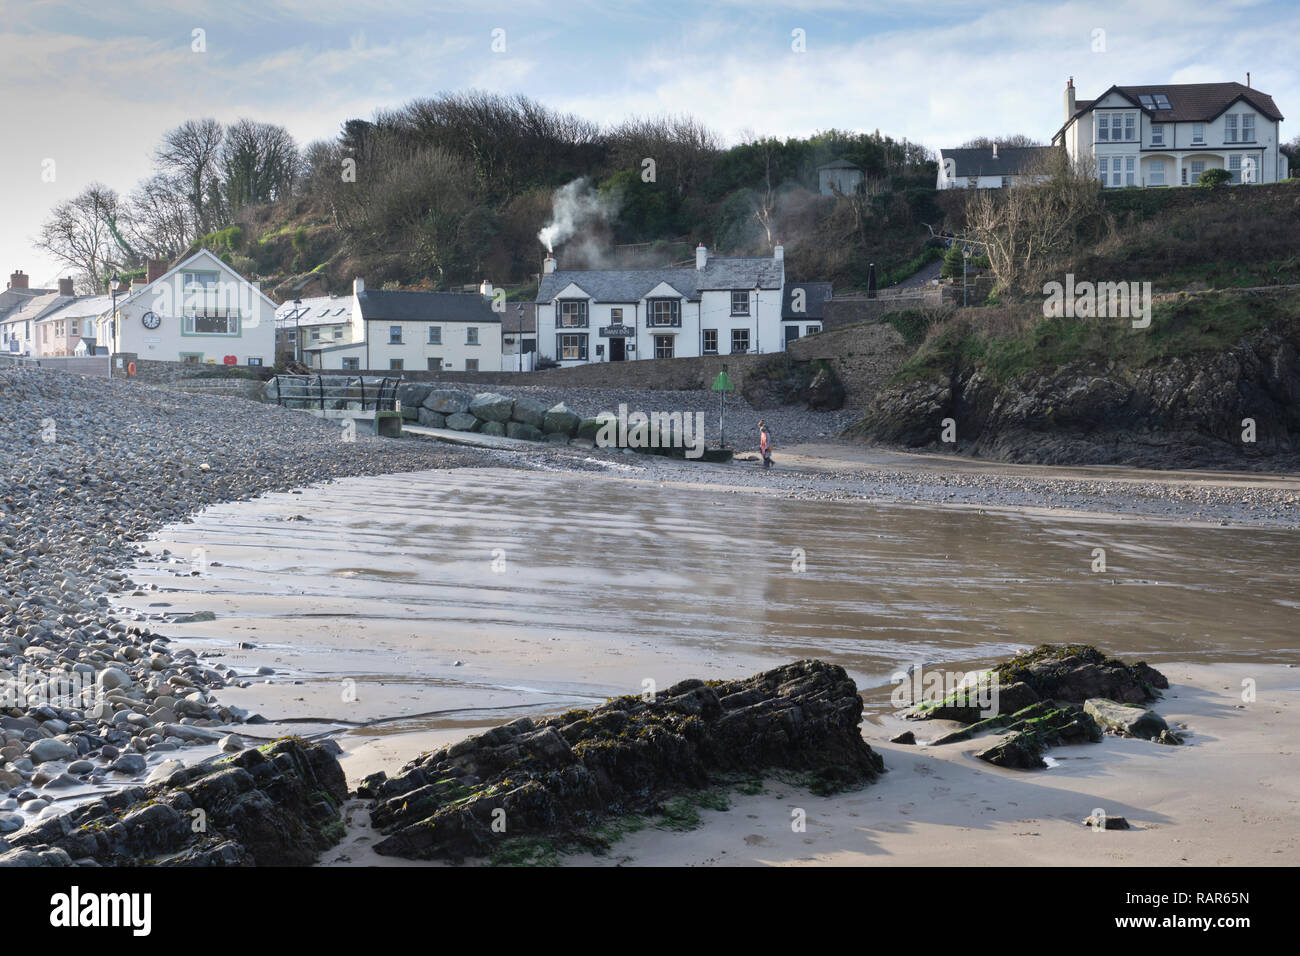 View of The Swan Inn taken from Little Haven beach, Pembrokeshire, Wales in Winter. - Stock Image